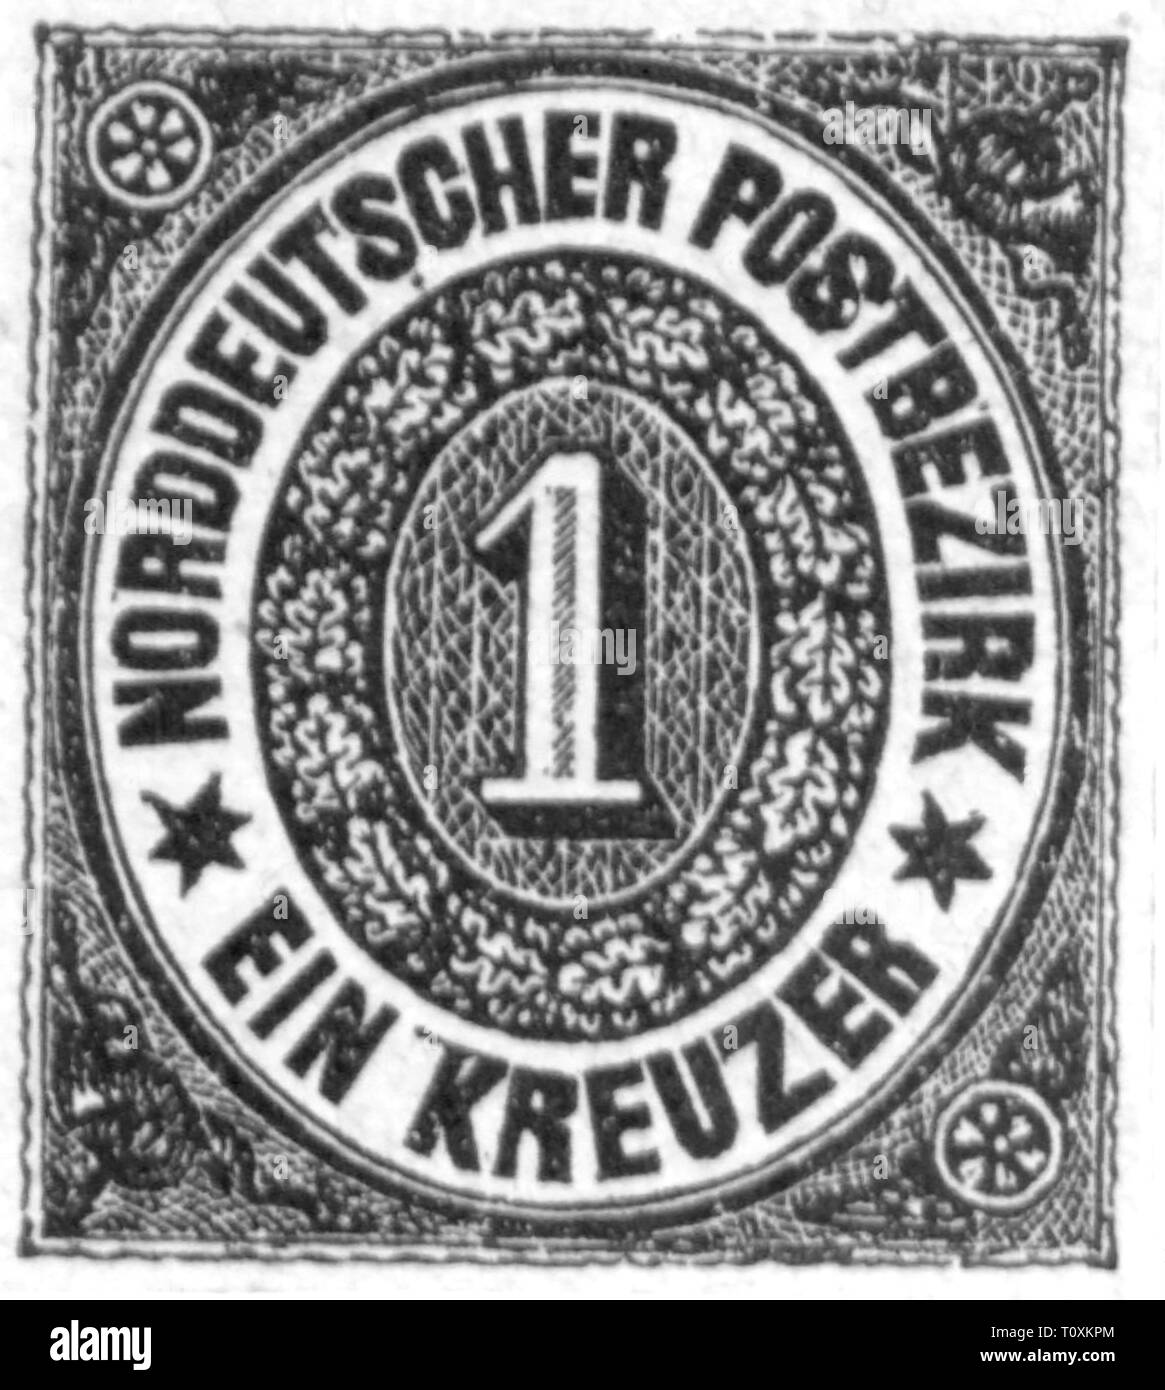 mail, postage stamps, Germany, Northern German postal district, 1 Kreuzer postage stamp, 1868, Additional-Rights-Clearance-Info-Not-Available - Stock Image